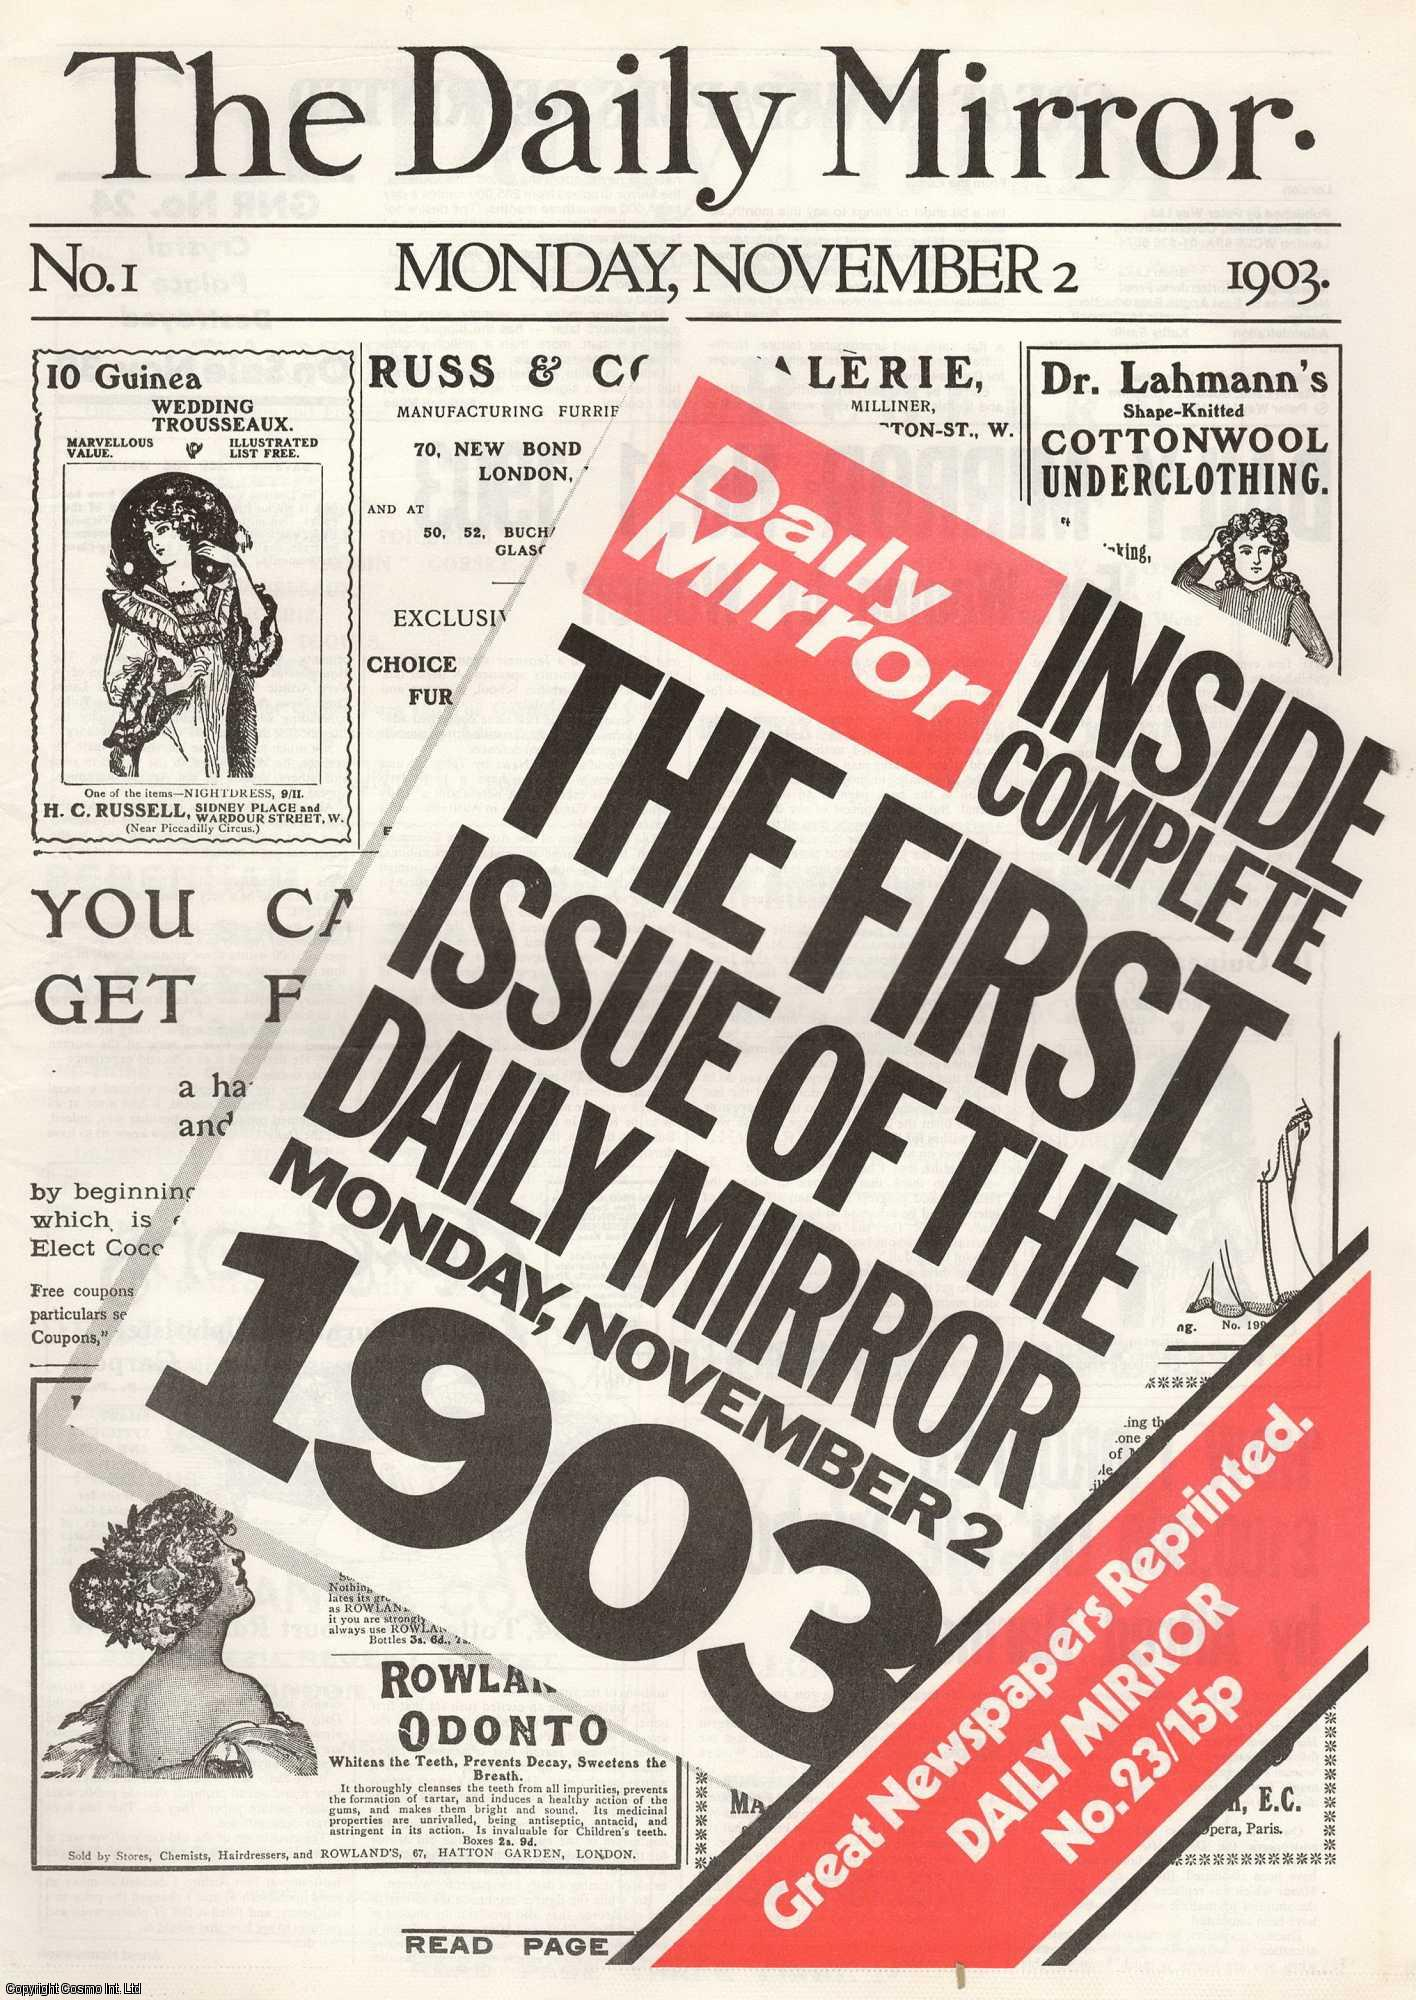 --- - The First Issue of The Daily Mirror. Monday, November 2nd, 1903. Great Newspapers Reprinted, Number 23.